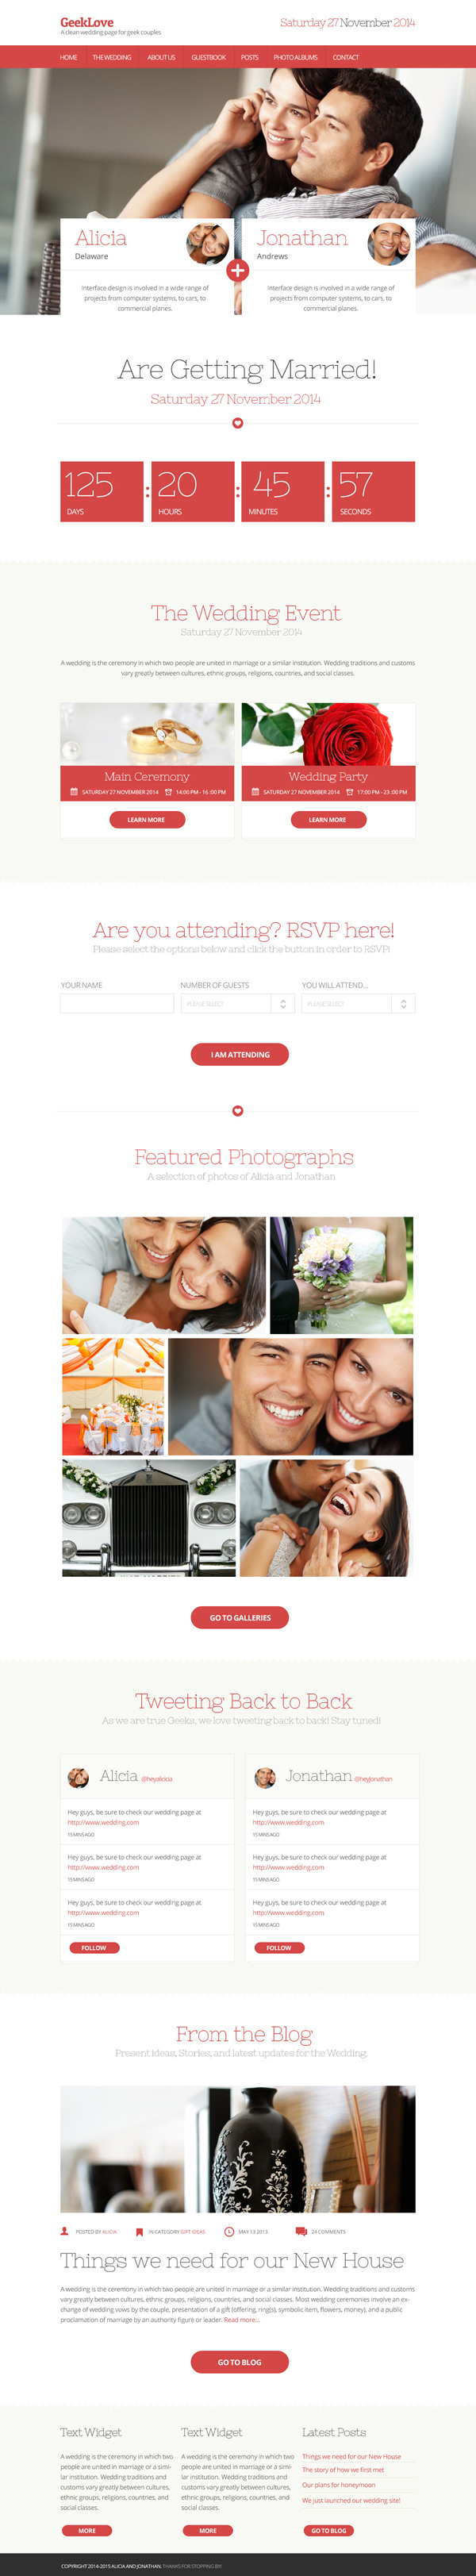 GeekLove WordPress Theme